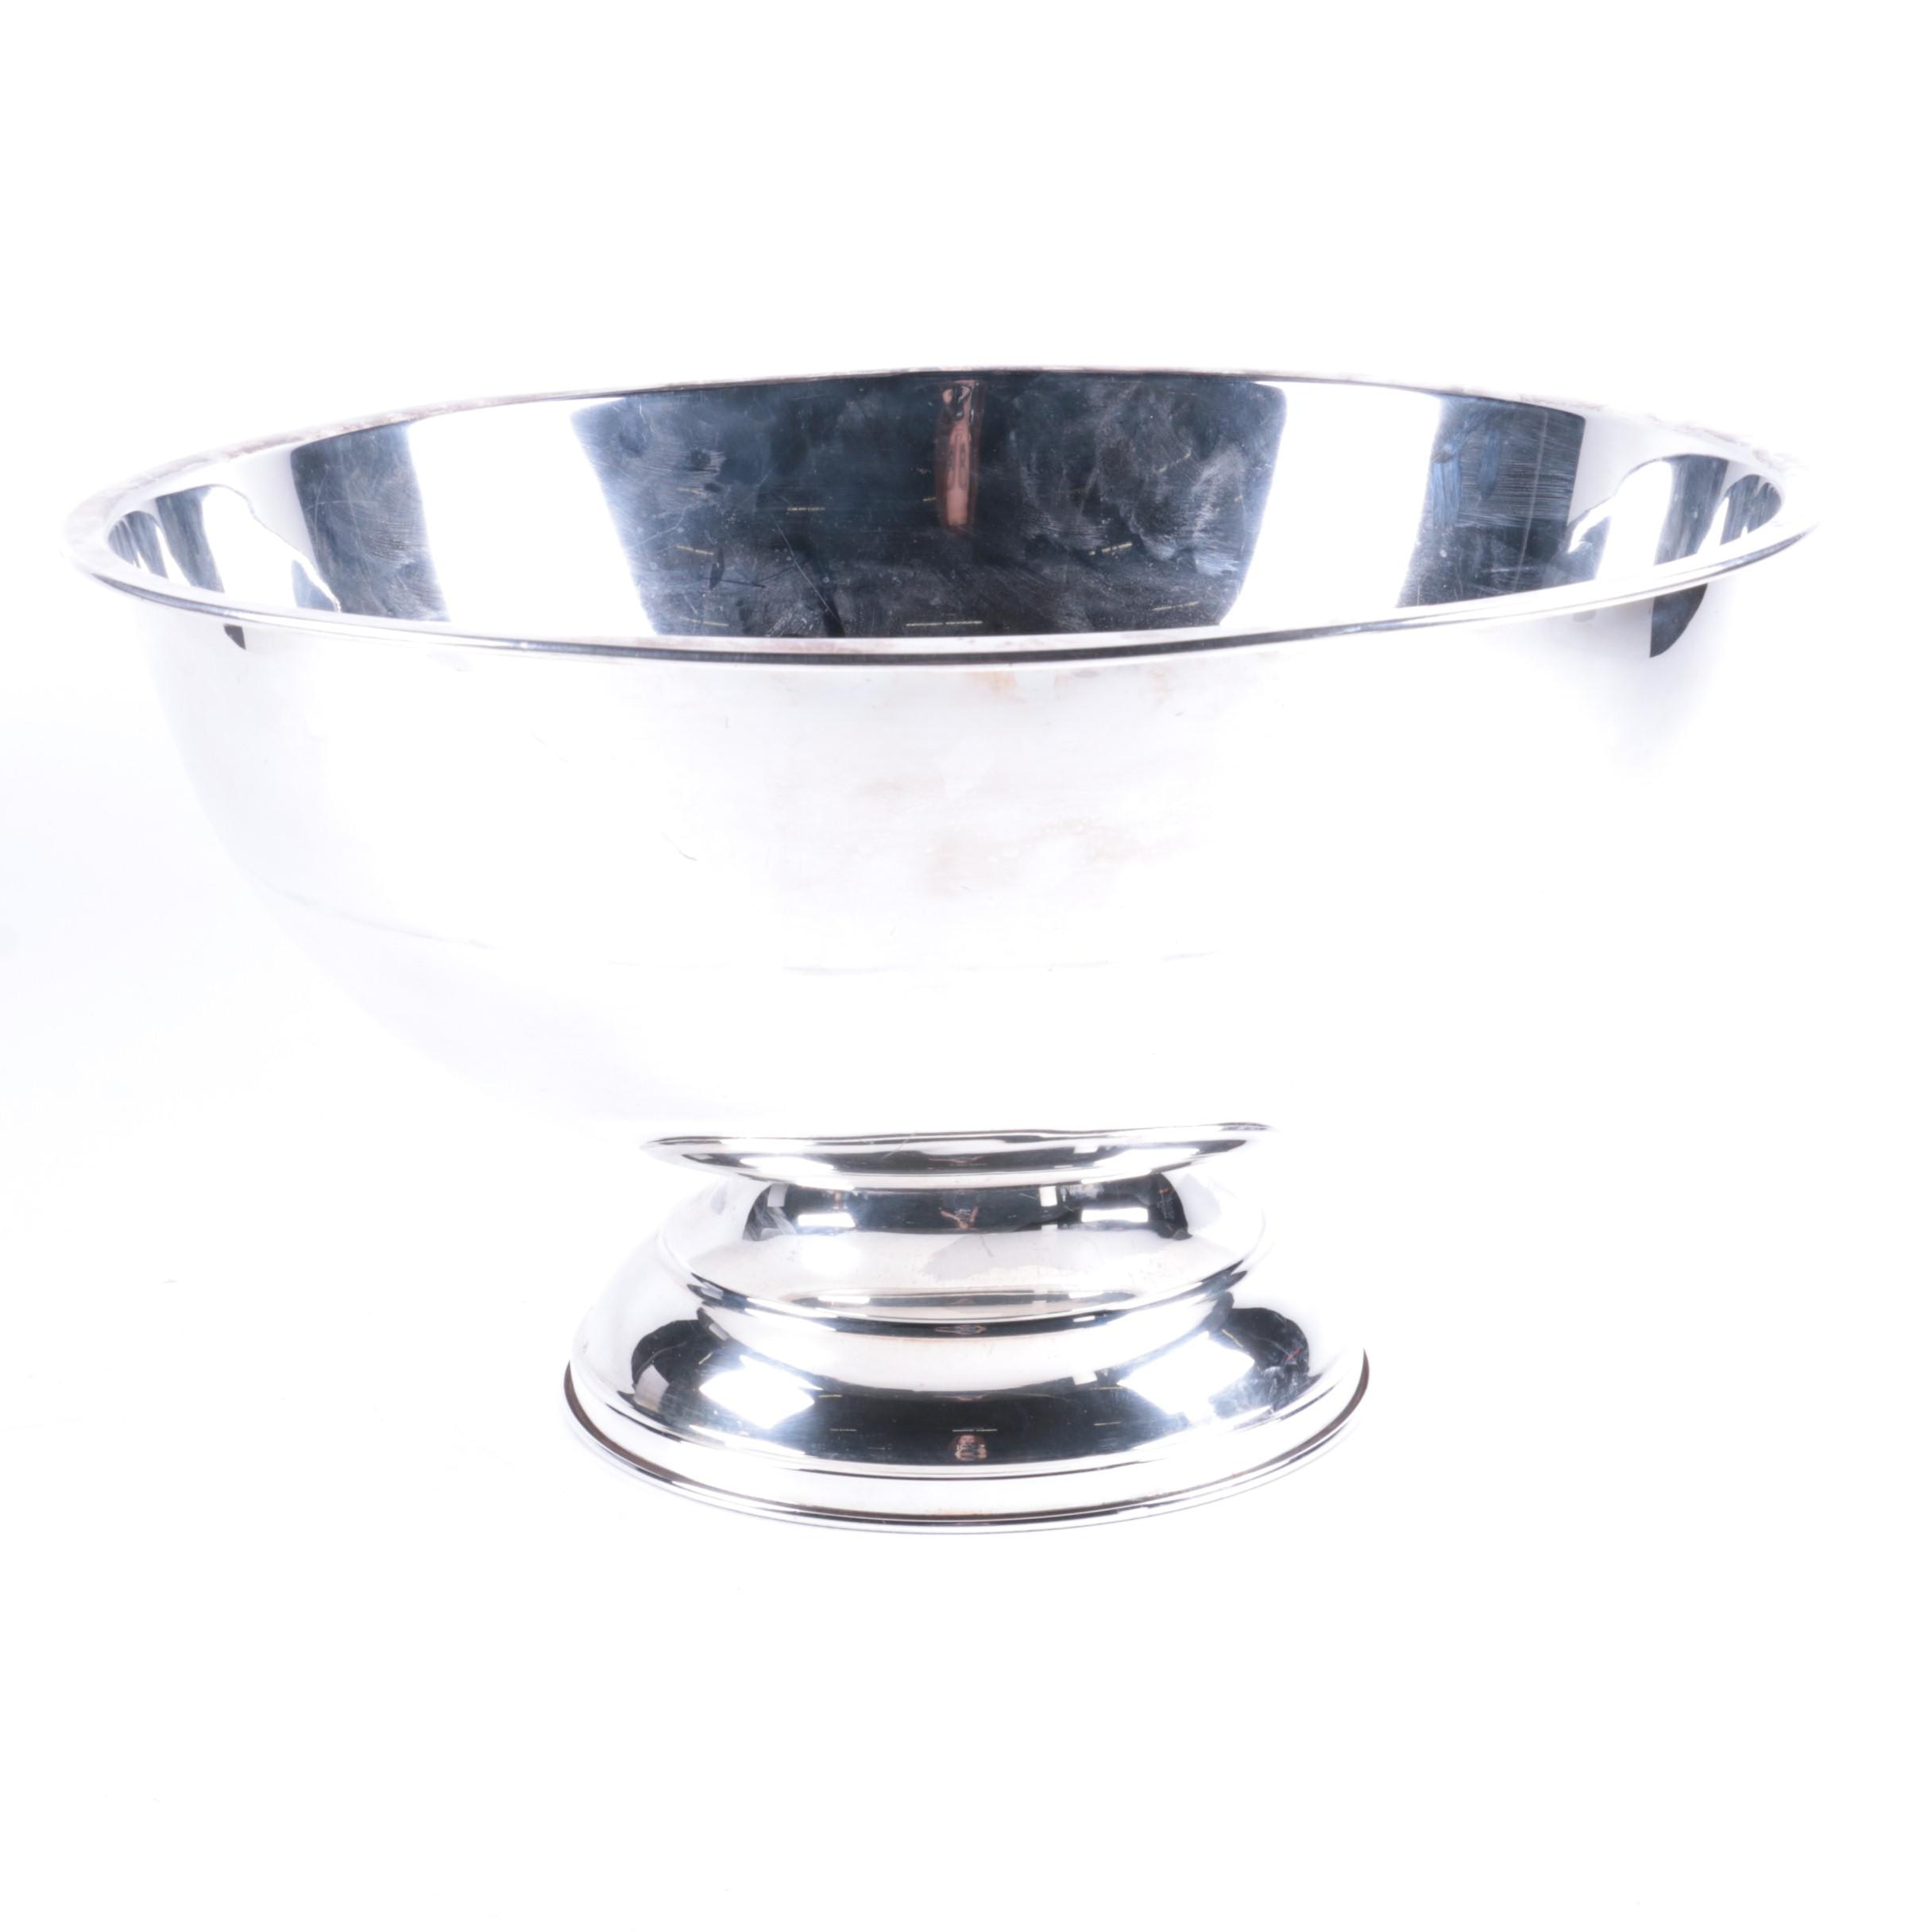 Silver Plate Footed Bowl